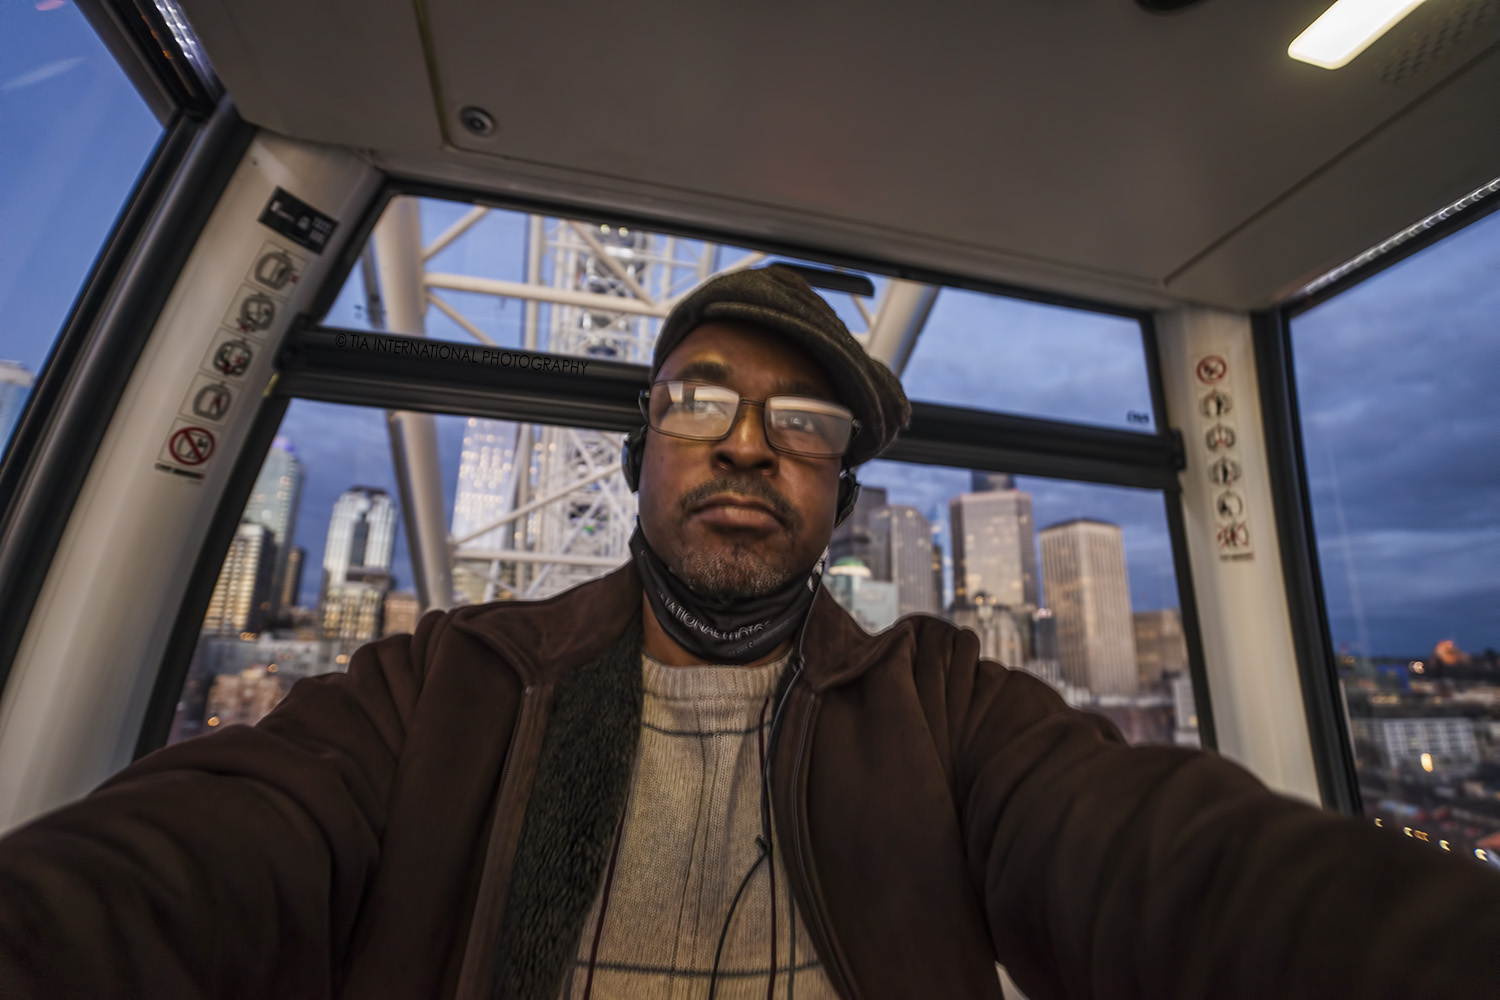 The photographer inside the gondola at the Seattle Great Wheel.